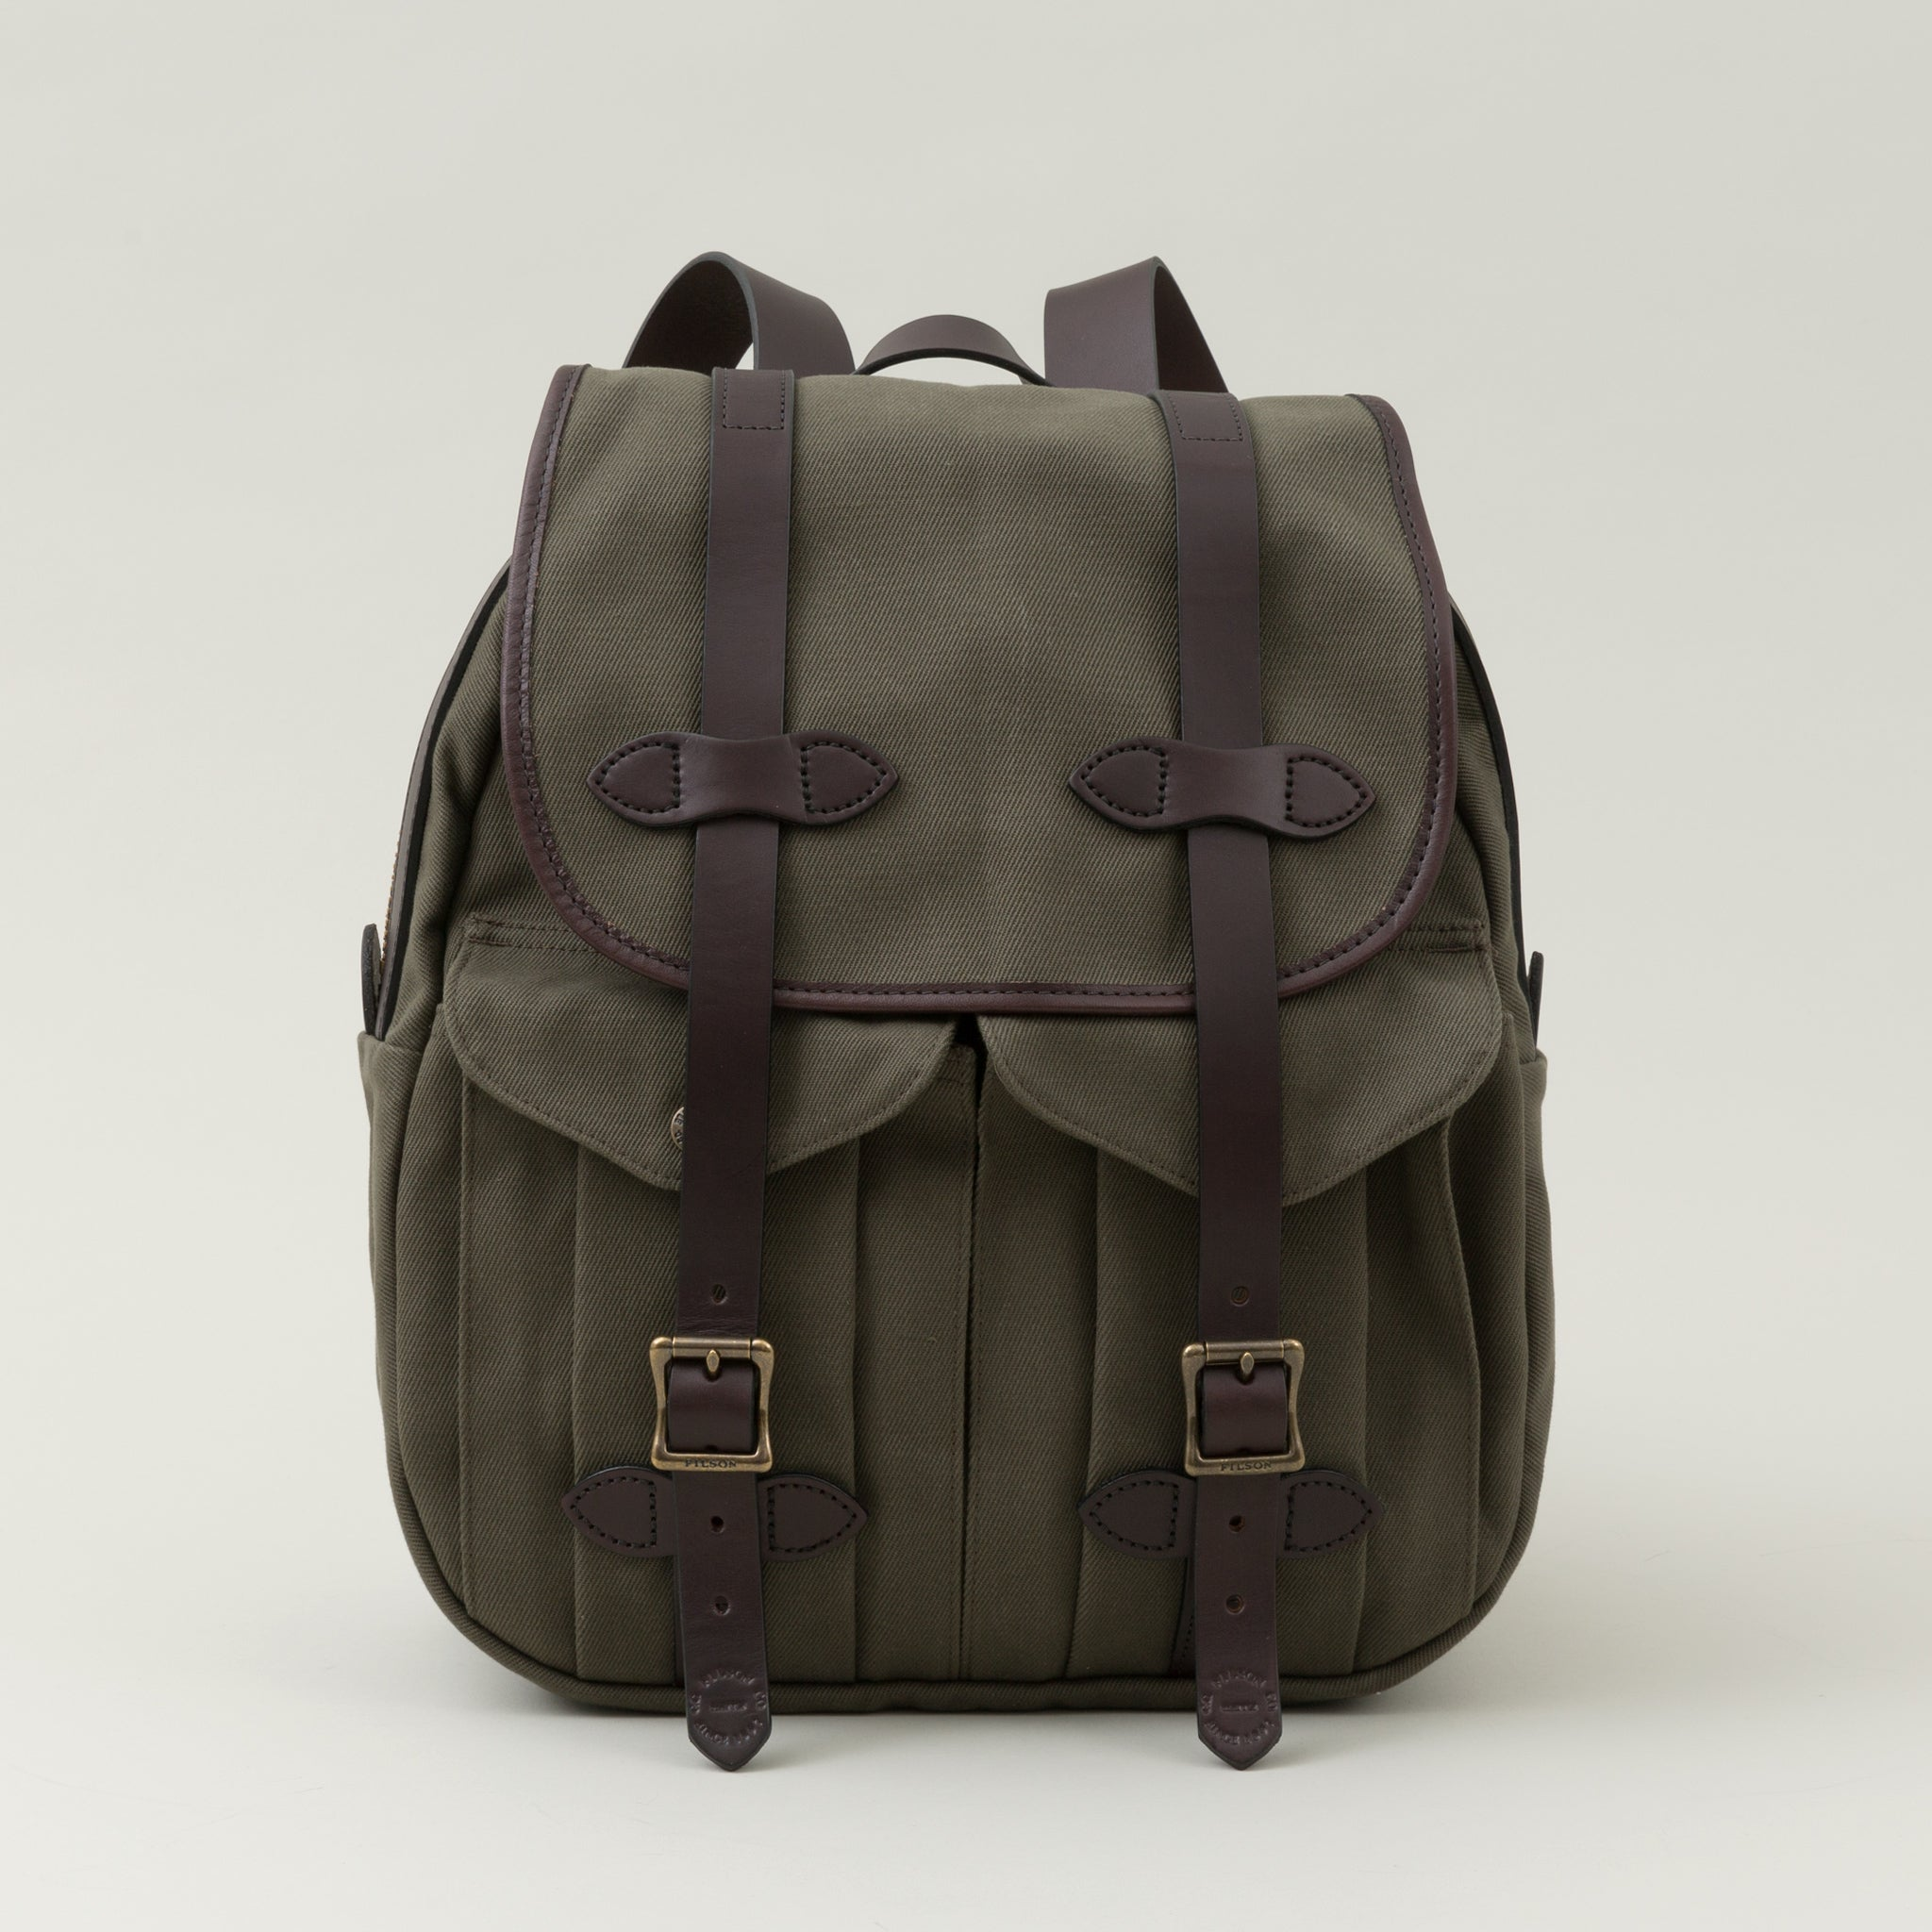 Rugged Twill Rucksack, Otter Green - The Stronghold 8cf9f2840a